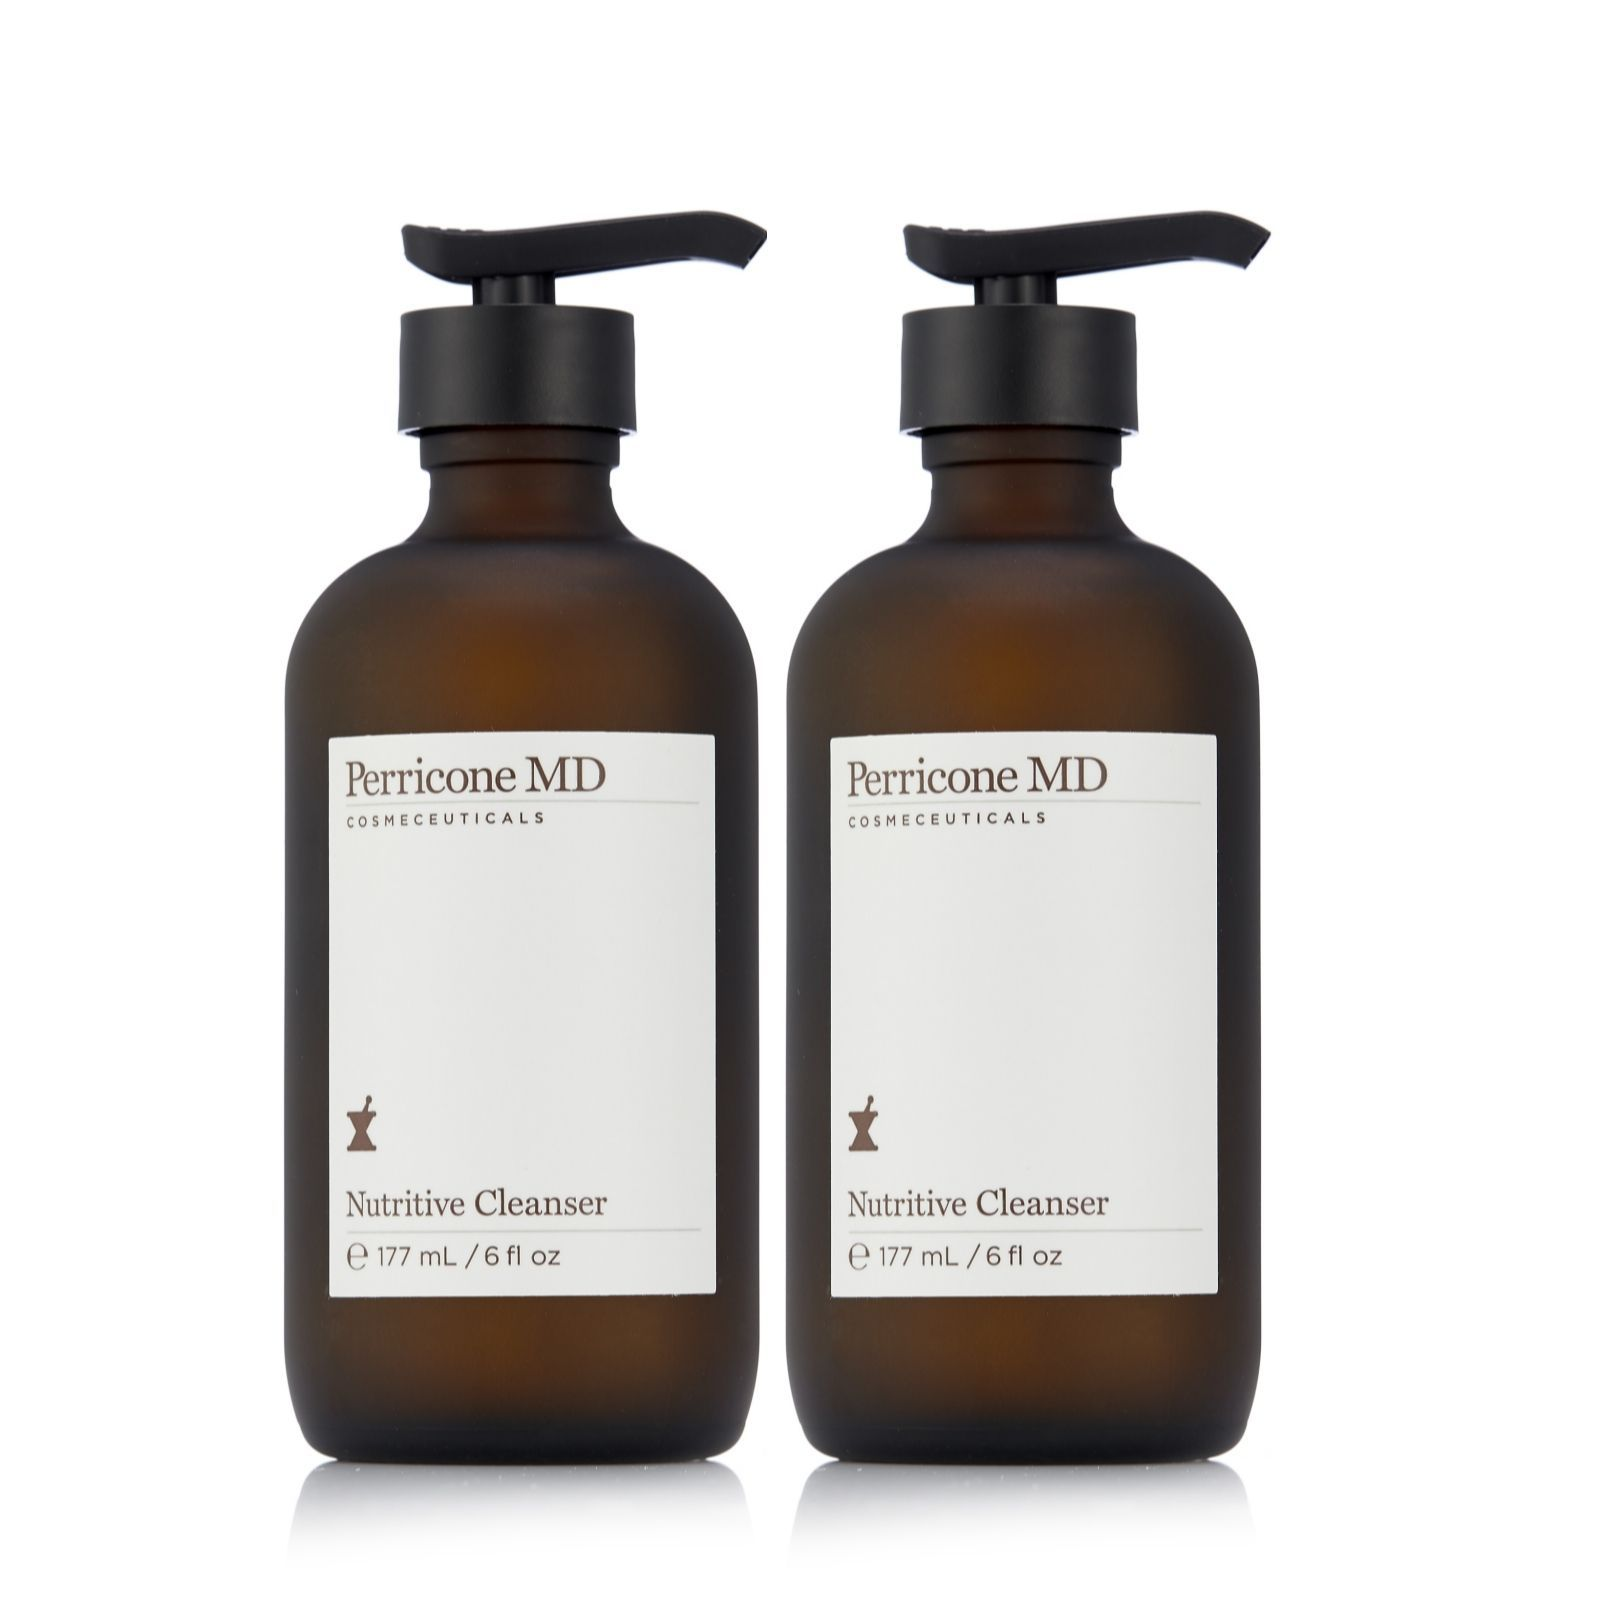 231034 Perricone Nutritive Cleanser Duo 177ml Qvc Price 40 50 P P 4 95 A Set Of Two Nutritive Cleansers Natural Facial Oil Beauty Skin Care Facial Oil